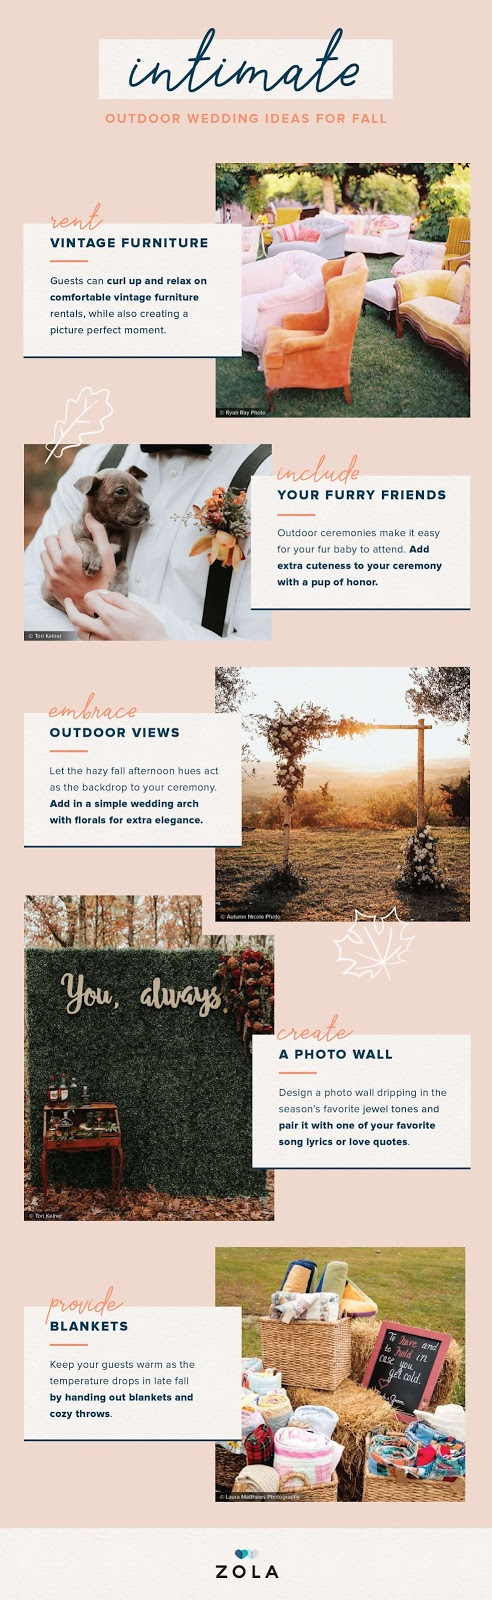 Autumn Wedding Ideas You Will Love- wedding ideas – Wedding Soiree Blog by K'Mich, Philadelphia's premier resource for wedding planning organizer and inspiration